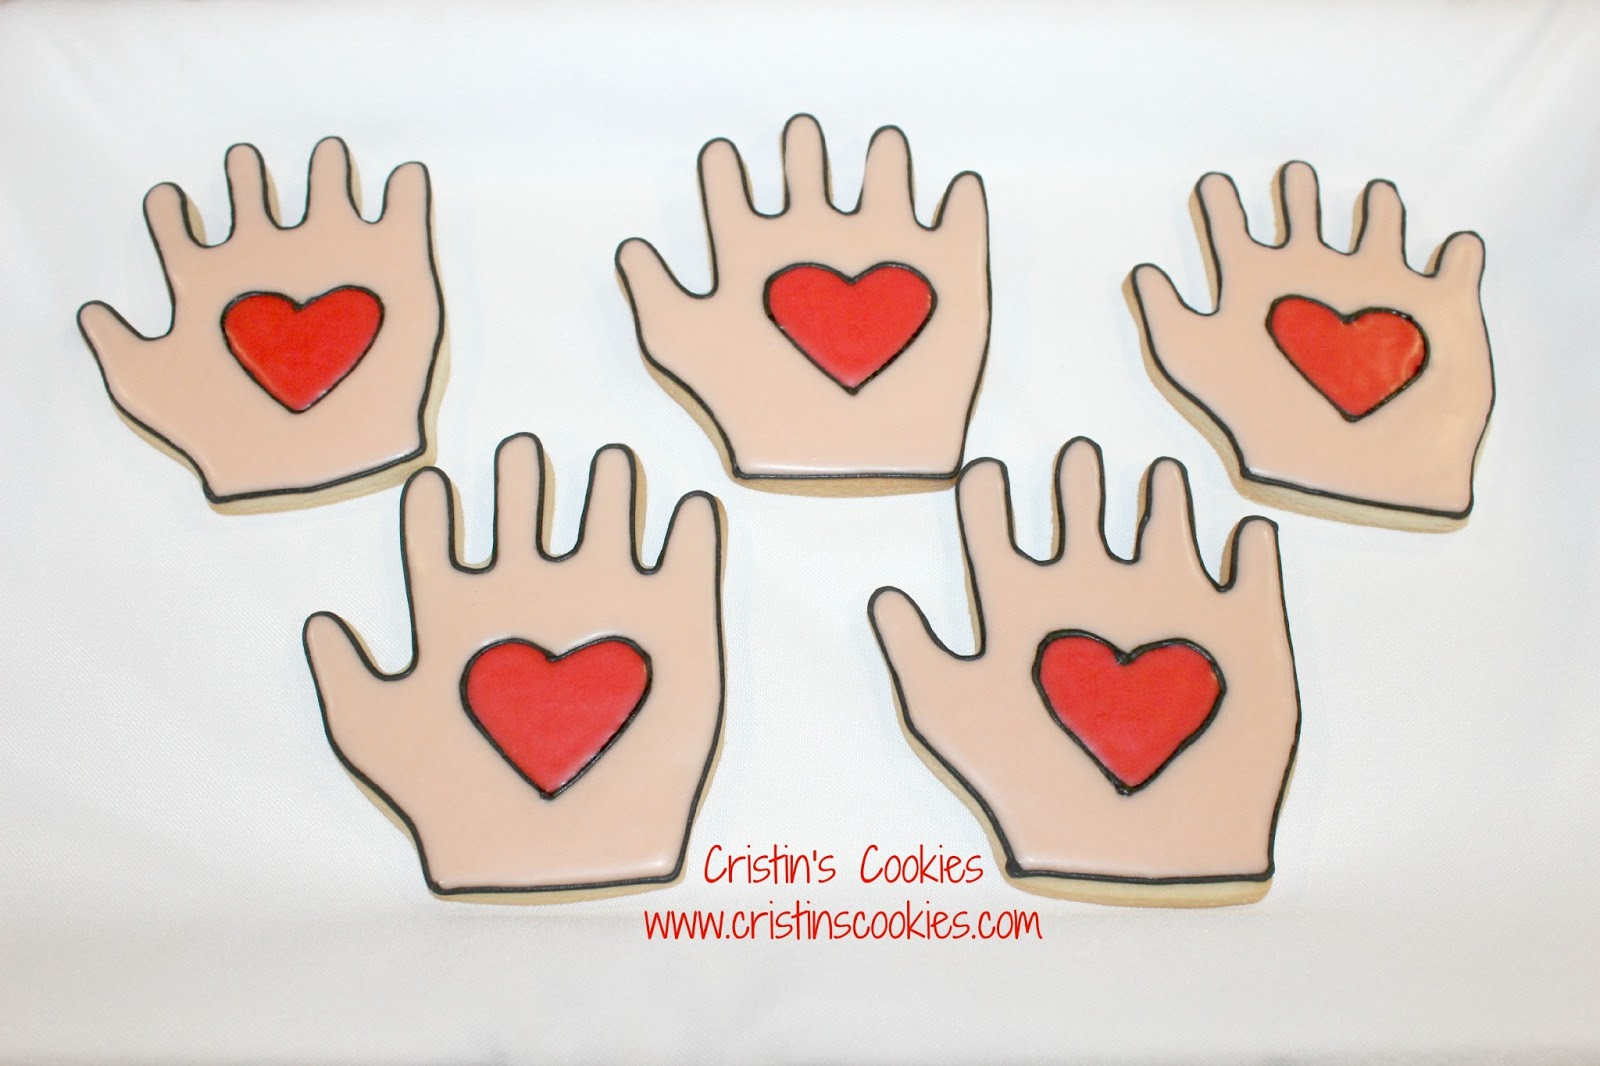 Cristins Cookies I Hold Your Heart In My Hand